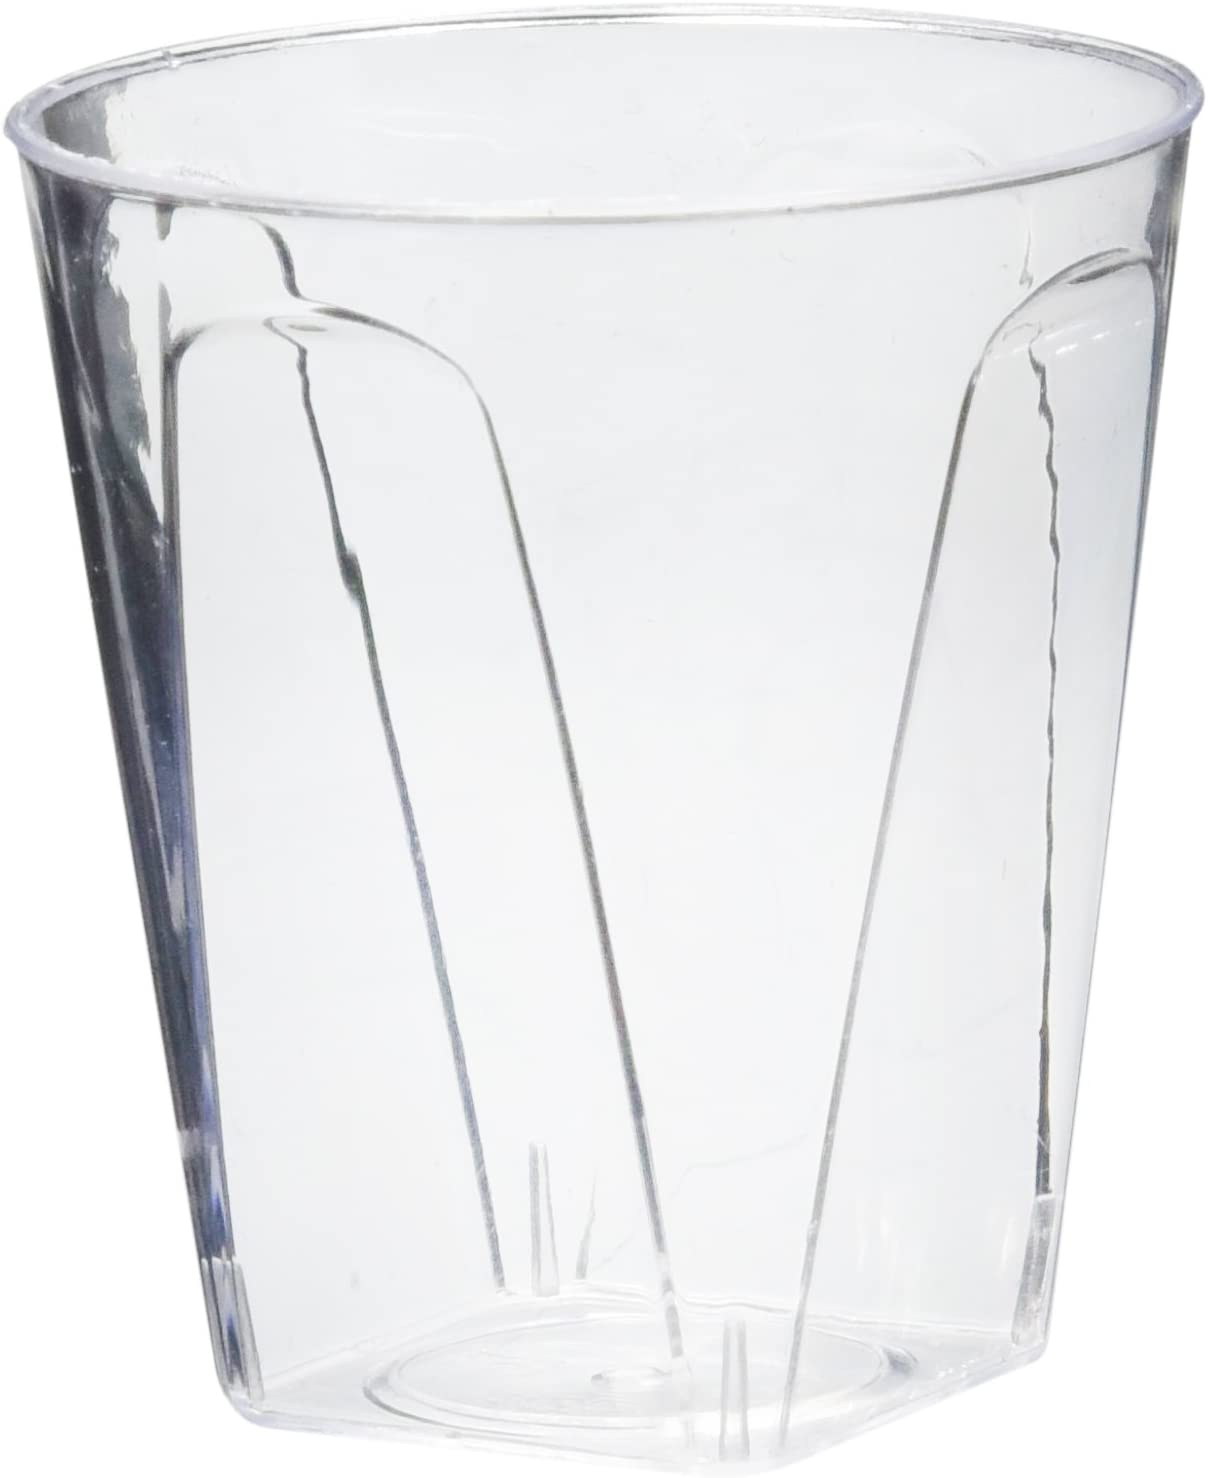 Stars and Stripes 40-Count Printed Hard Plastic 2-Ounce Shot Glasses